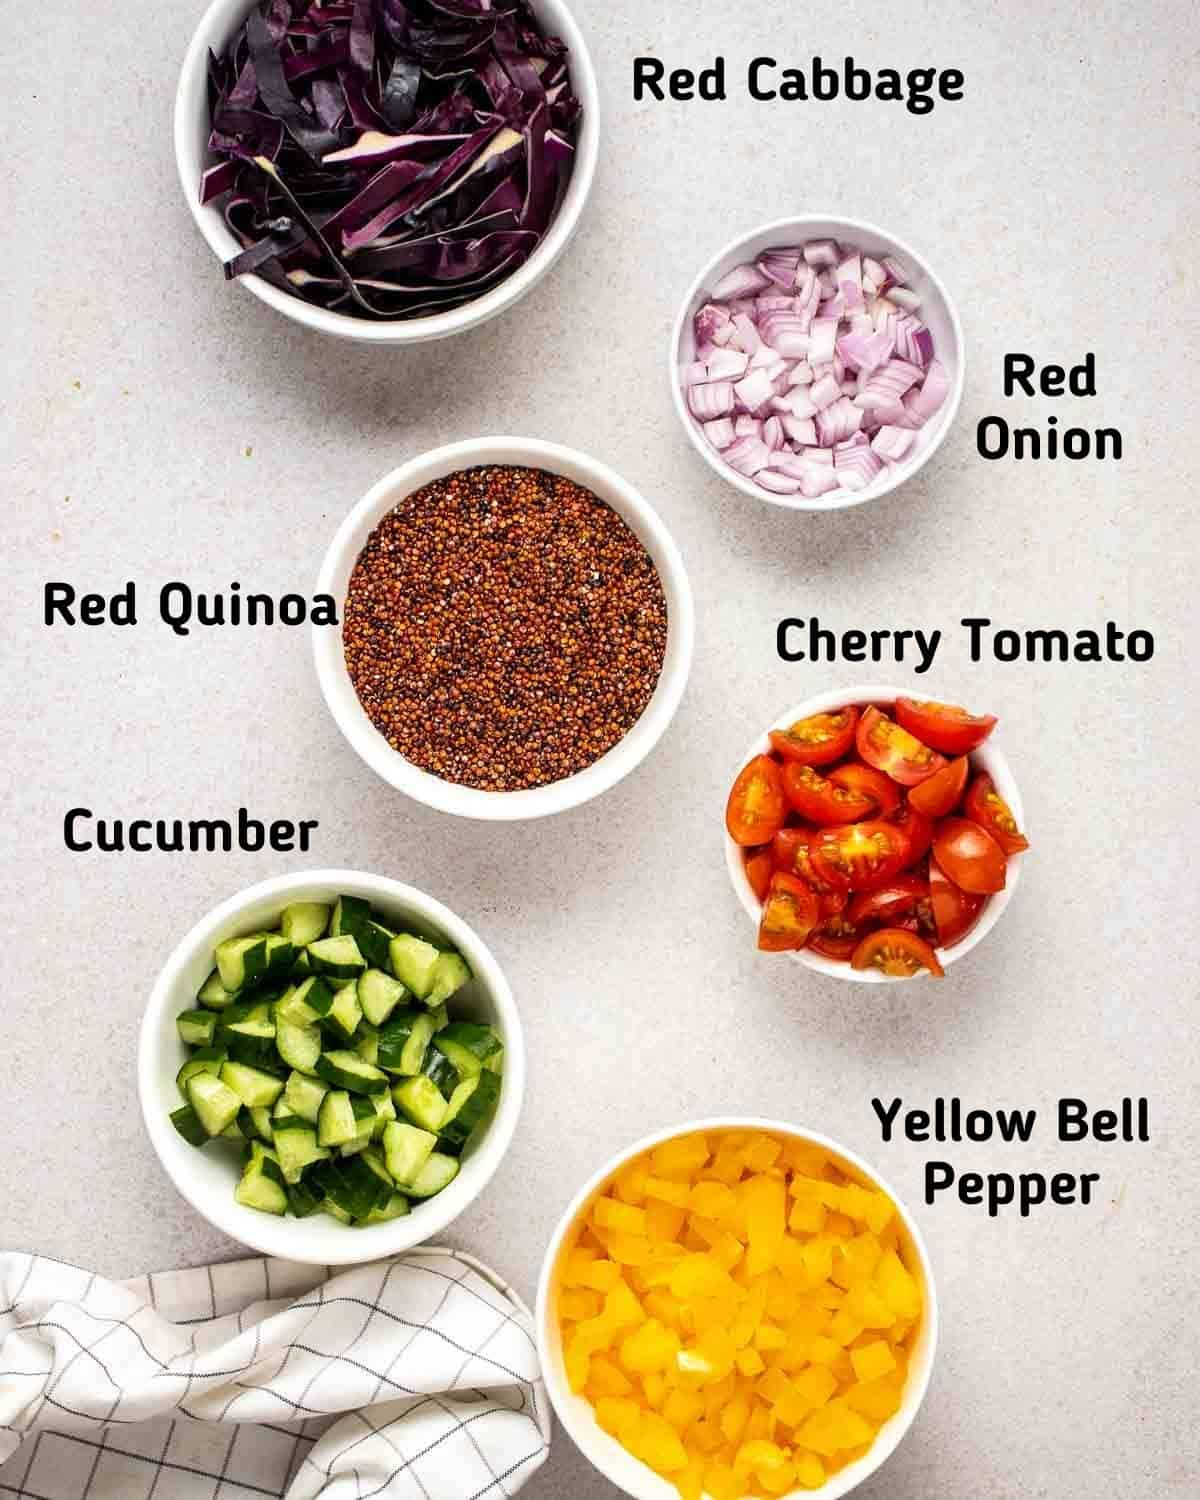 Ingredients needed for salad like quinoa, onion, cabbage, tomato, cucumber and bell pepper on a grey background.